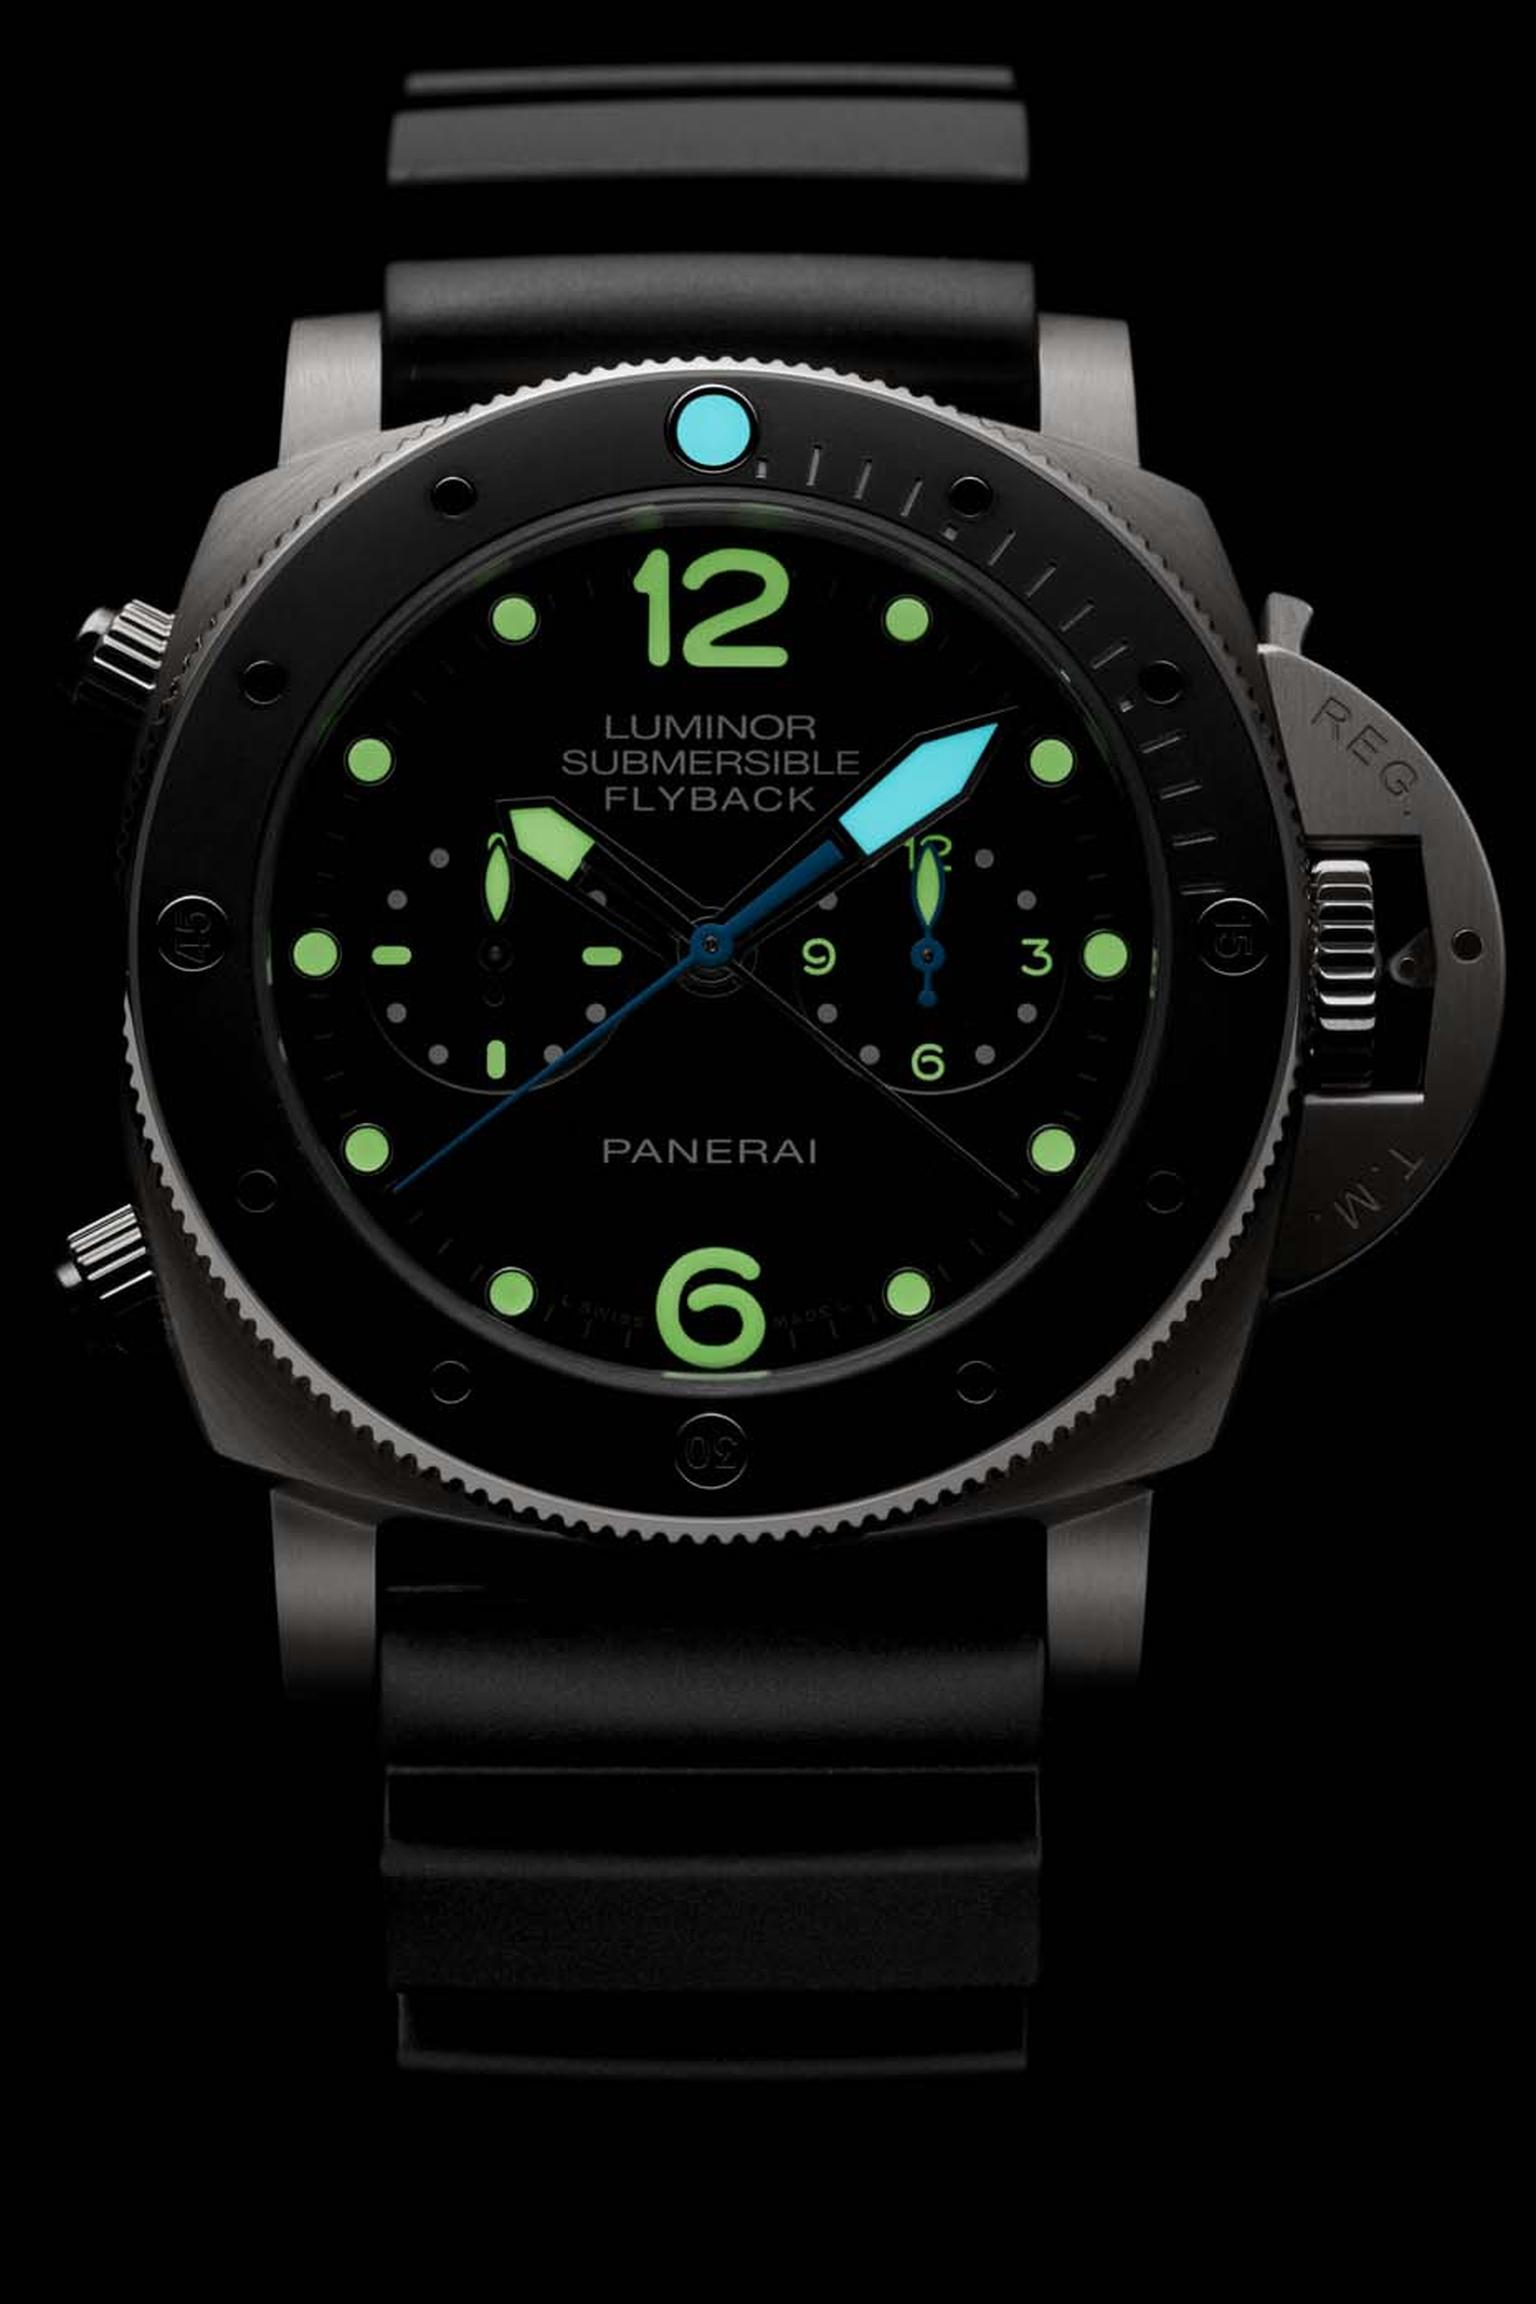 Panerai Luminor Submersible 1950 3 Days flyback chronograph was presented this year at the SIHH watch salon. The 47mm titanium case and dial of this professional dive watch, with water-resistance to 300 metres, glows in the depths thanks to the applicatio